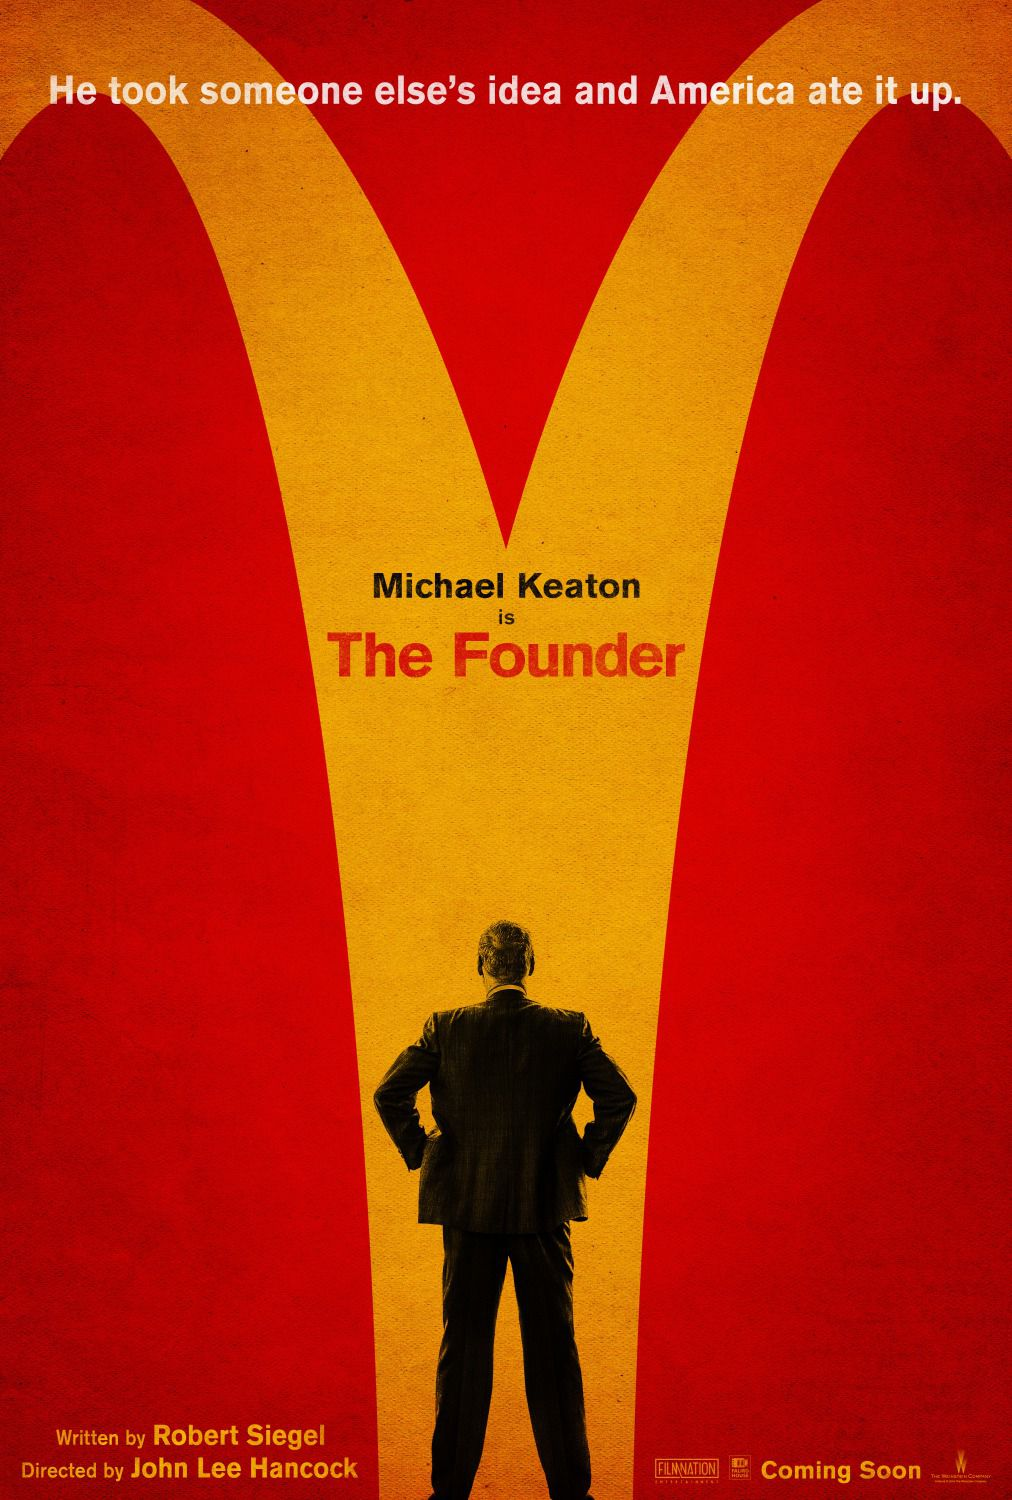 The Founder - he took someone else's idea and America ate it up - Michael Keaton - film poster